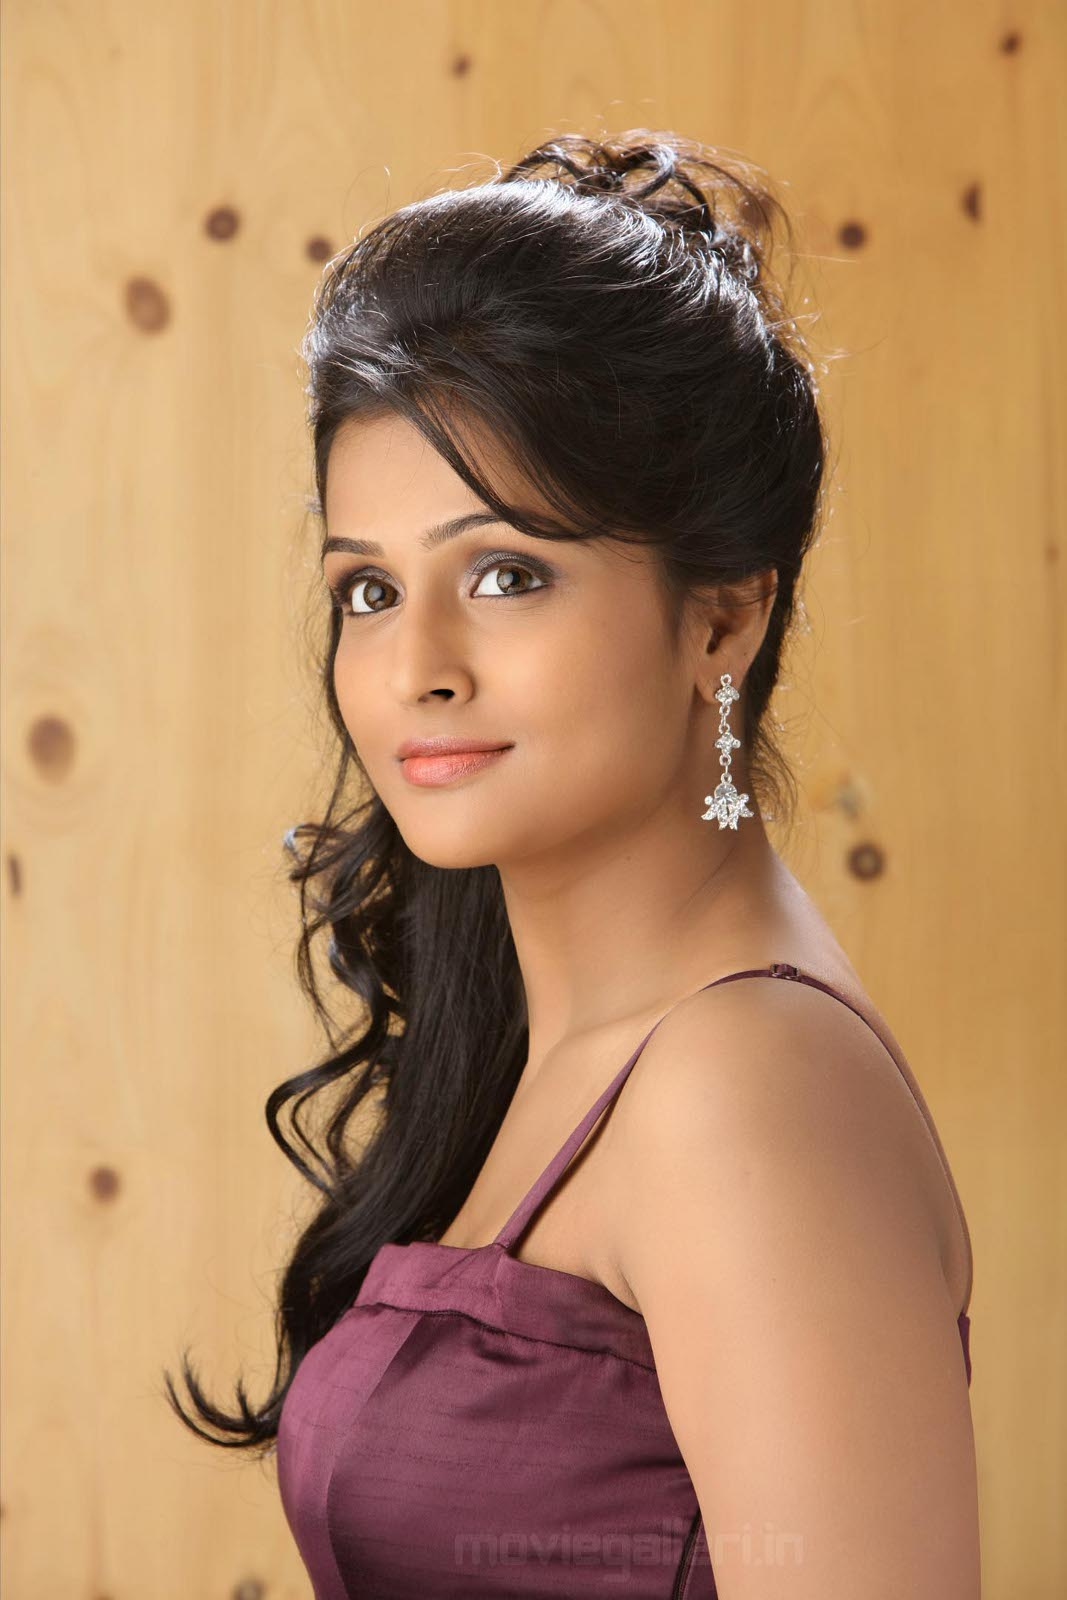 lady artists photo gallery: ramya nambeesan - hi-res images